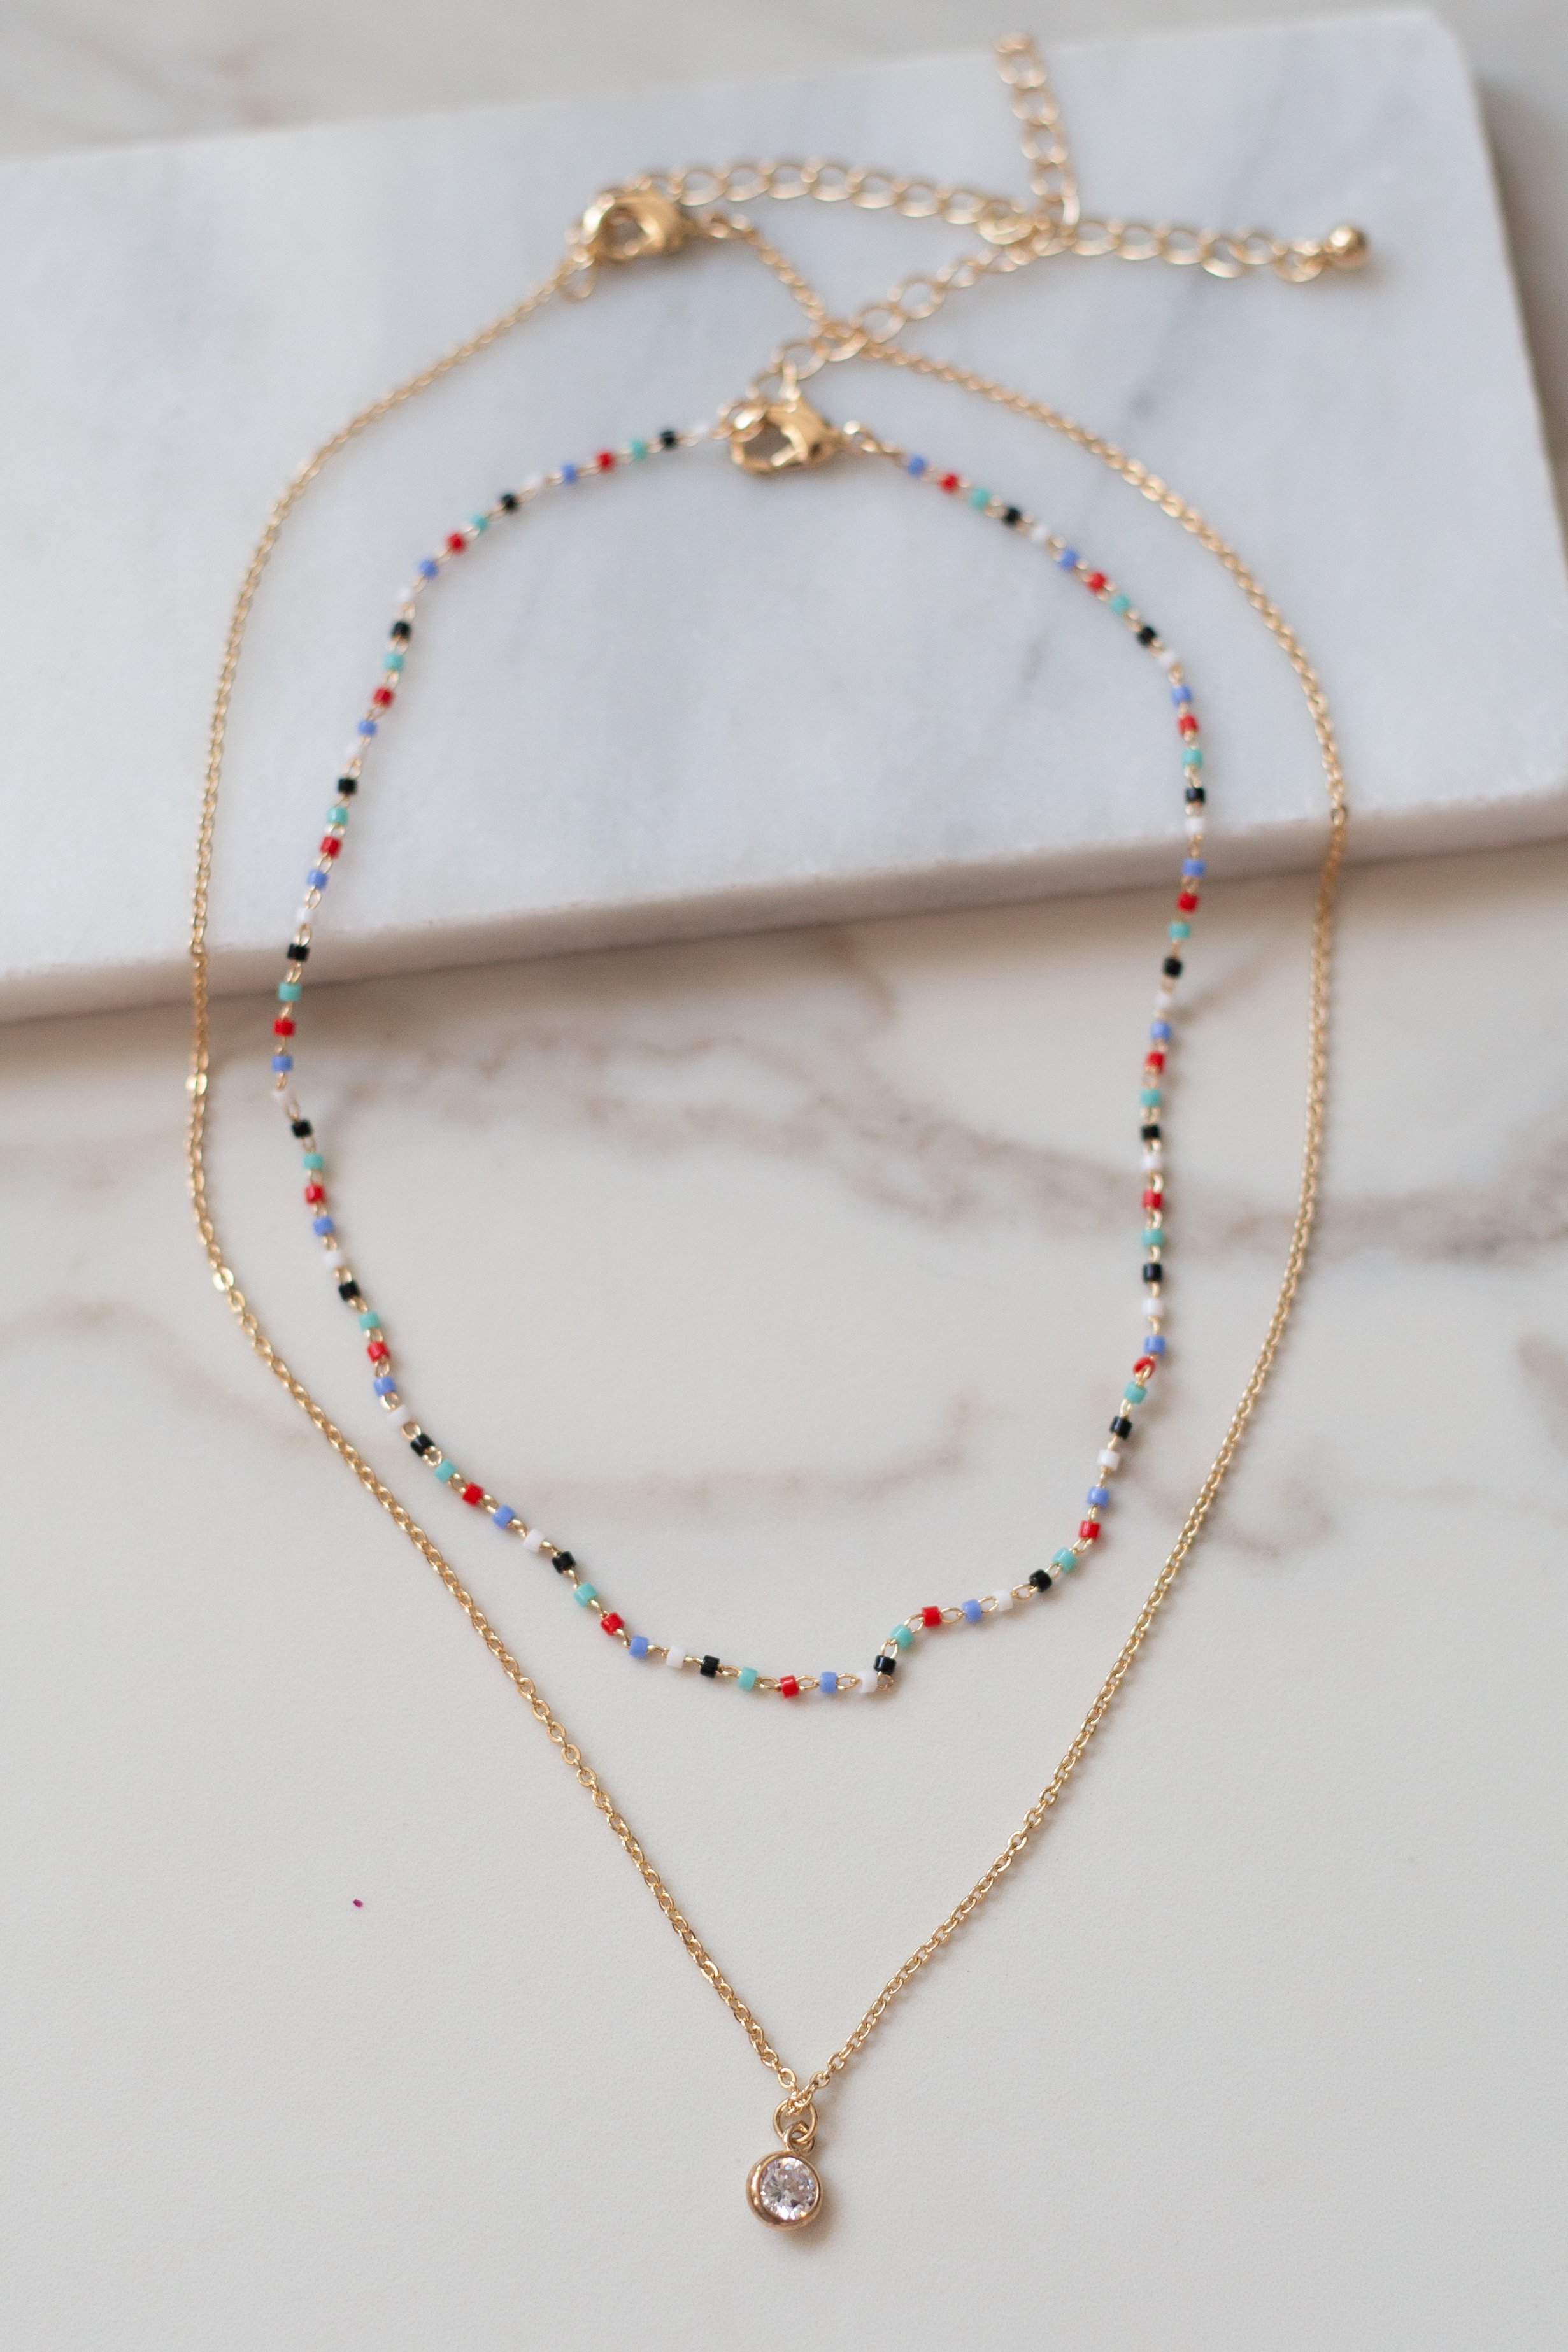 Gold Layered Necklace Set with Rainbow Beads and Crystal